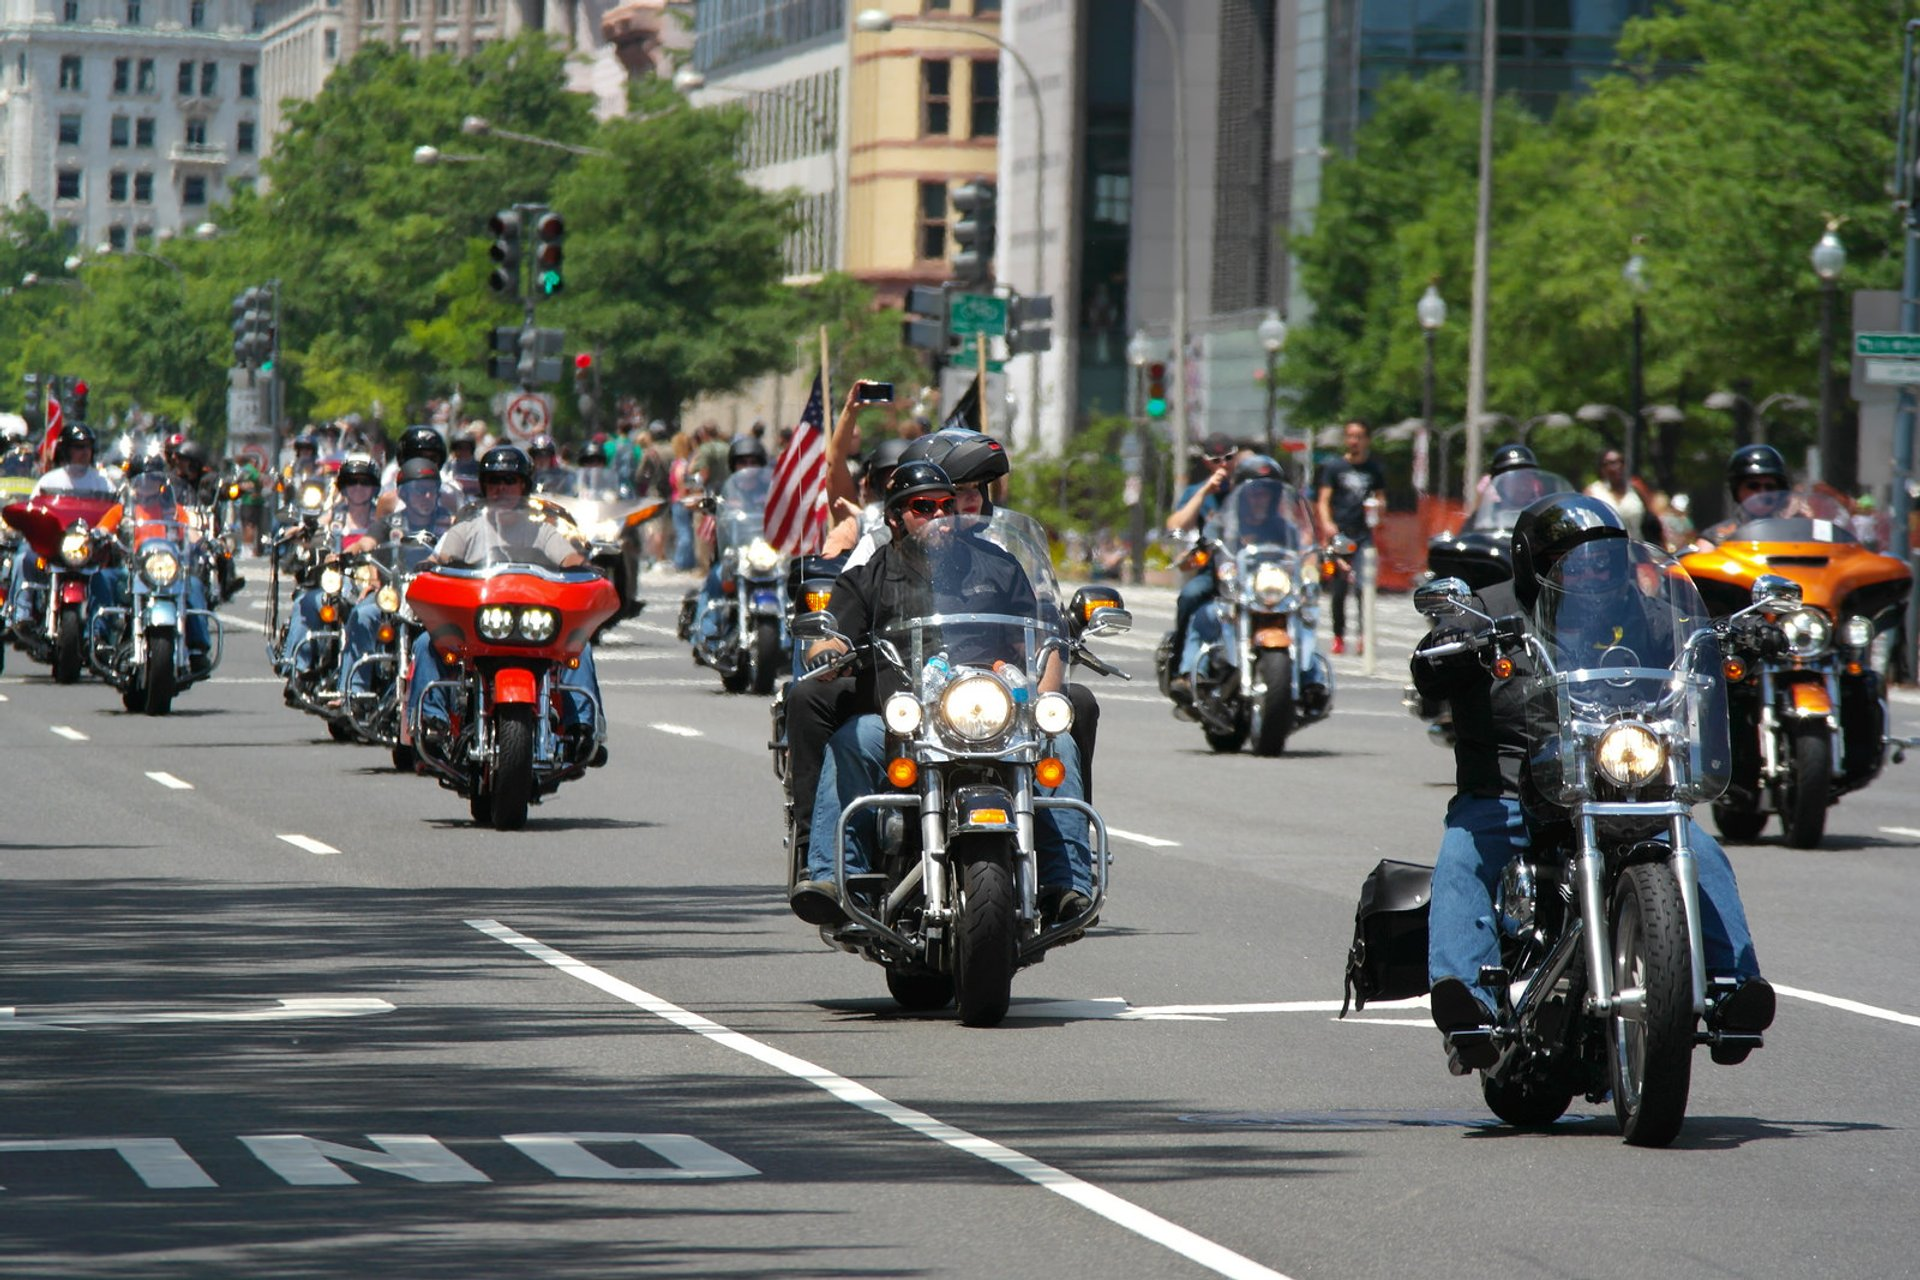 Rolling Thunder 'Ride for Freedom' in Washington, D.C. - Best Season